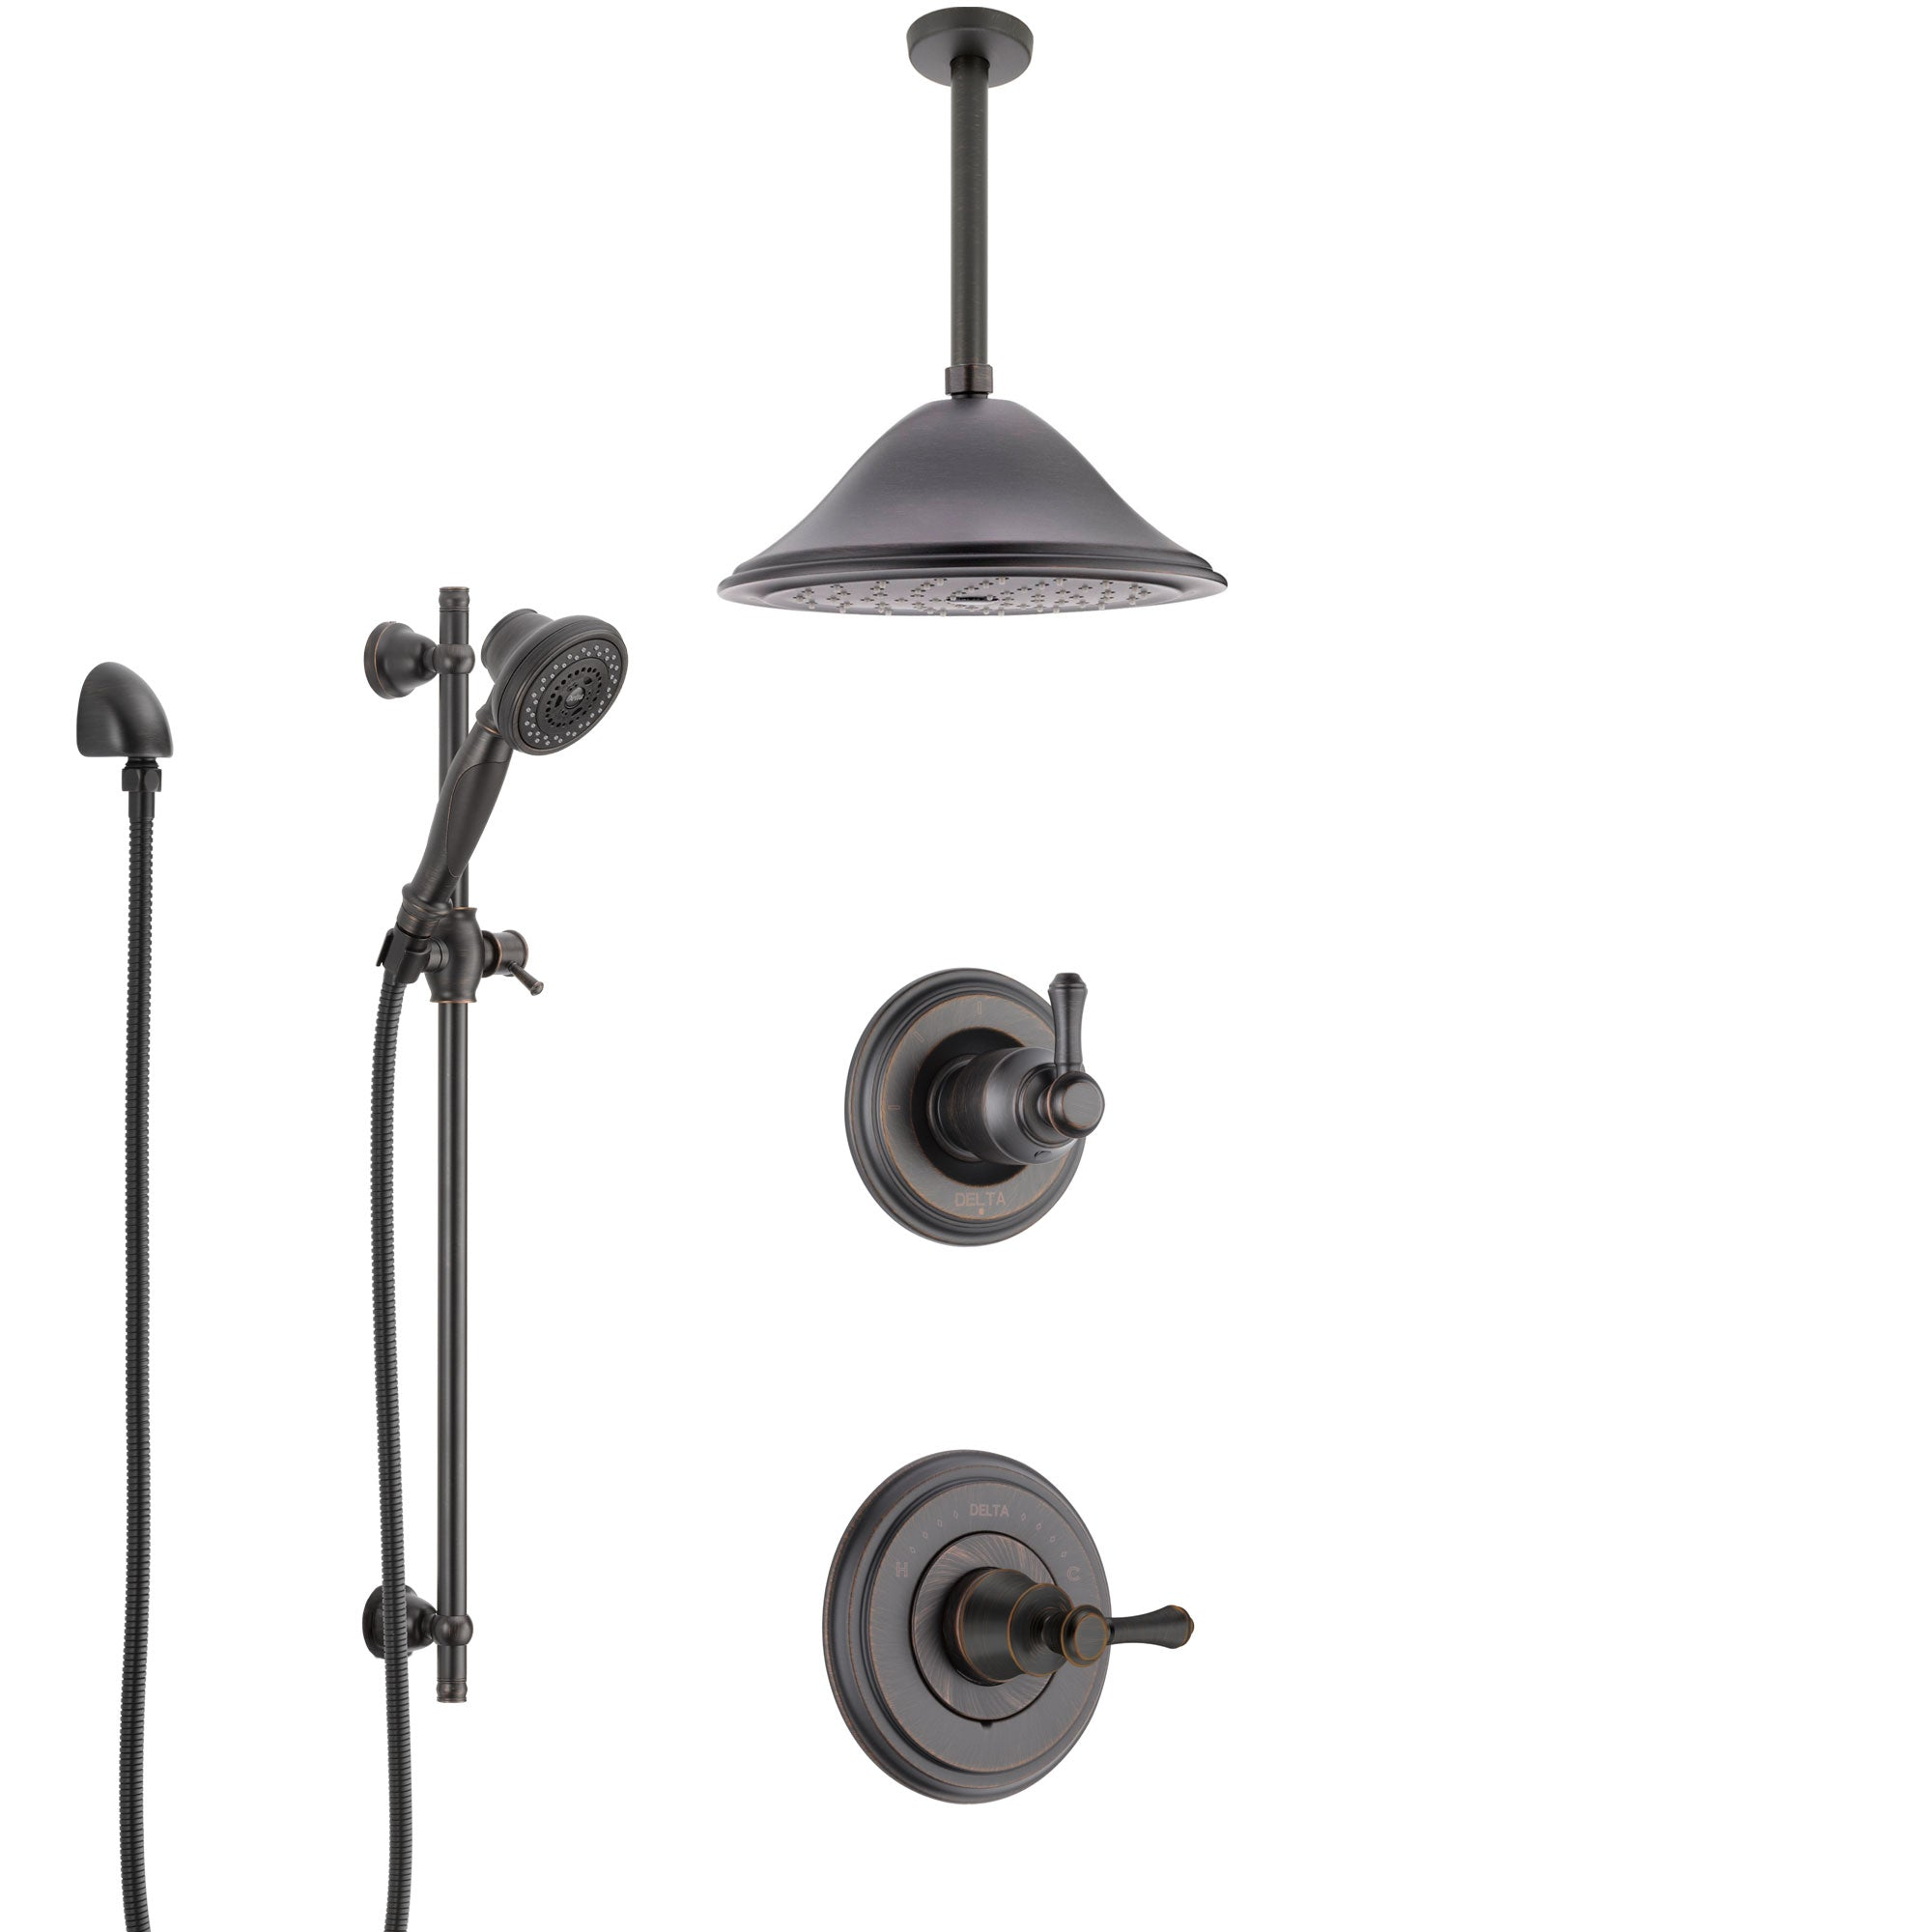 Delta Cassidy Venetian Bronze Shower System with Control Handle, Diverter, Ceiling Mount Showerhead, and Hand Shower with Slidebar SS14973RB7